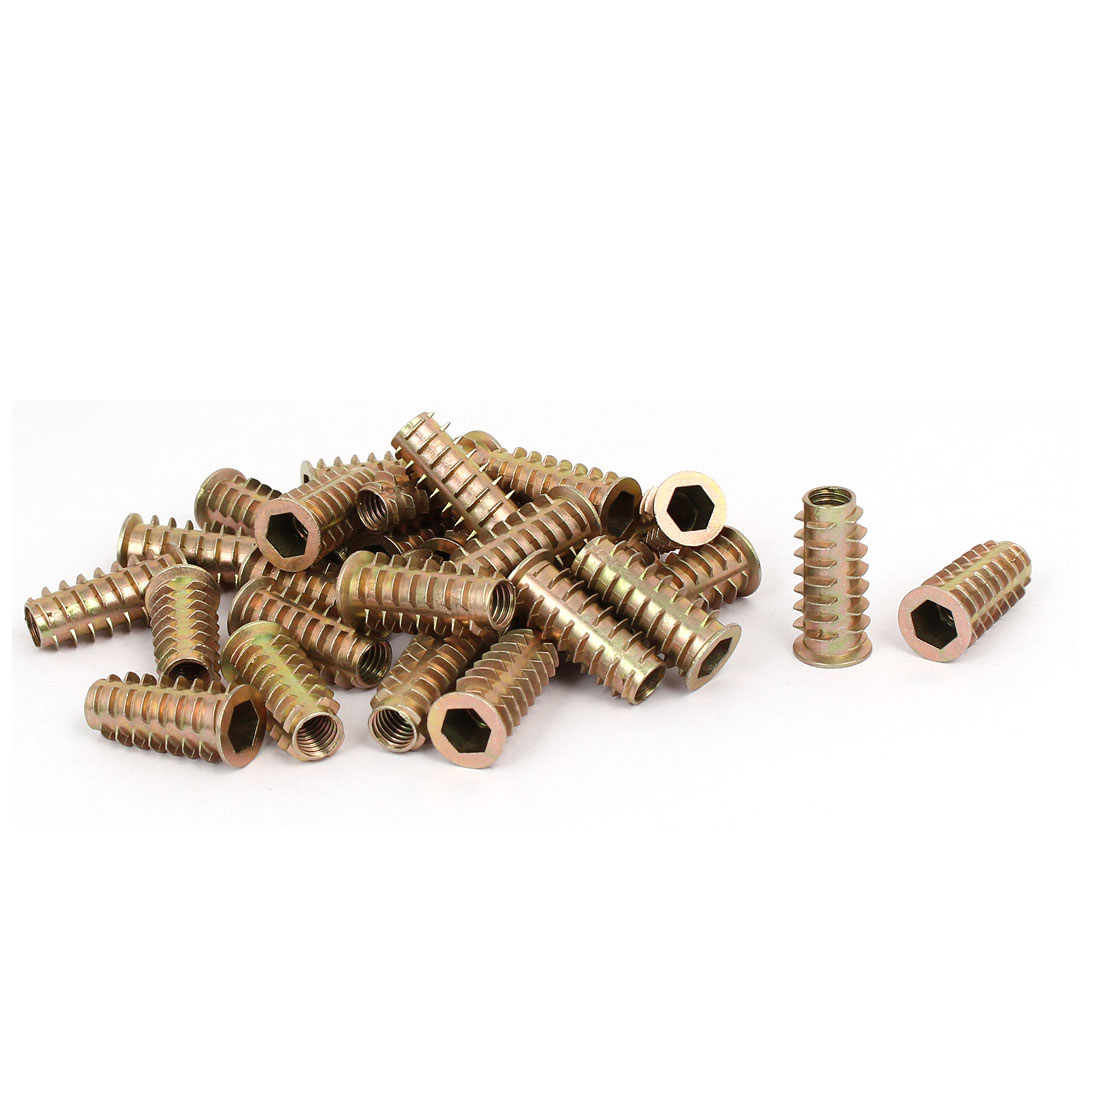 M8 x 30mm Hex Socket Head Insert Screws E-Nuts Furniture Fittings 30pcs